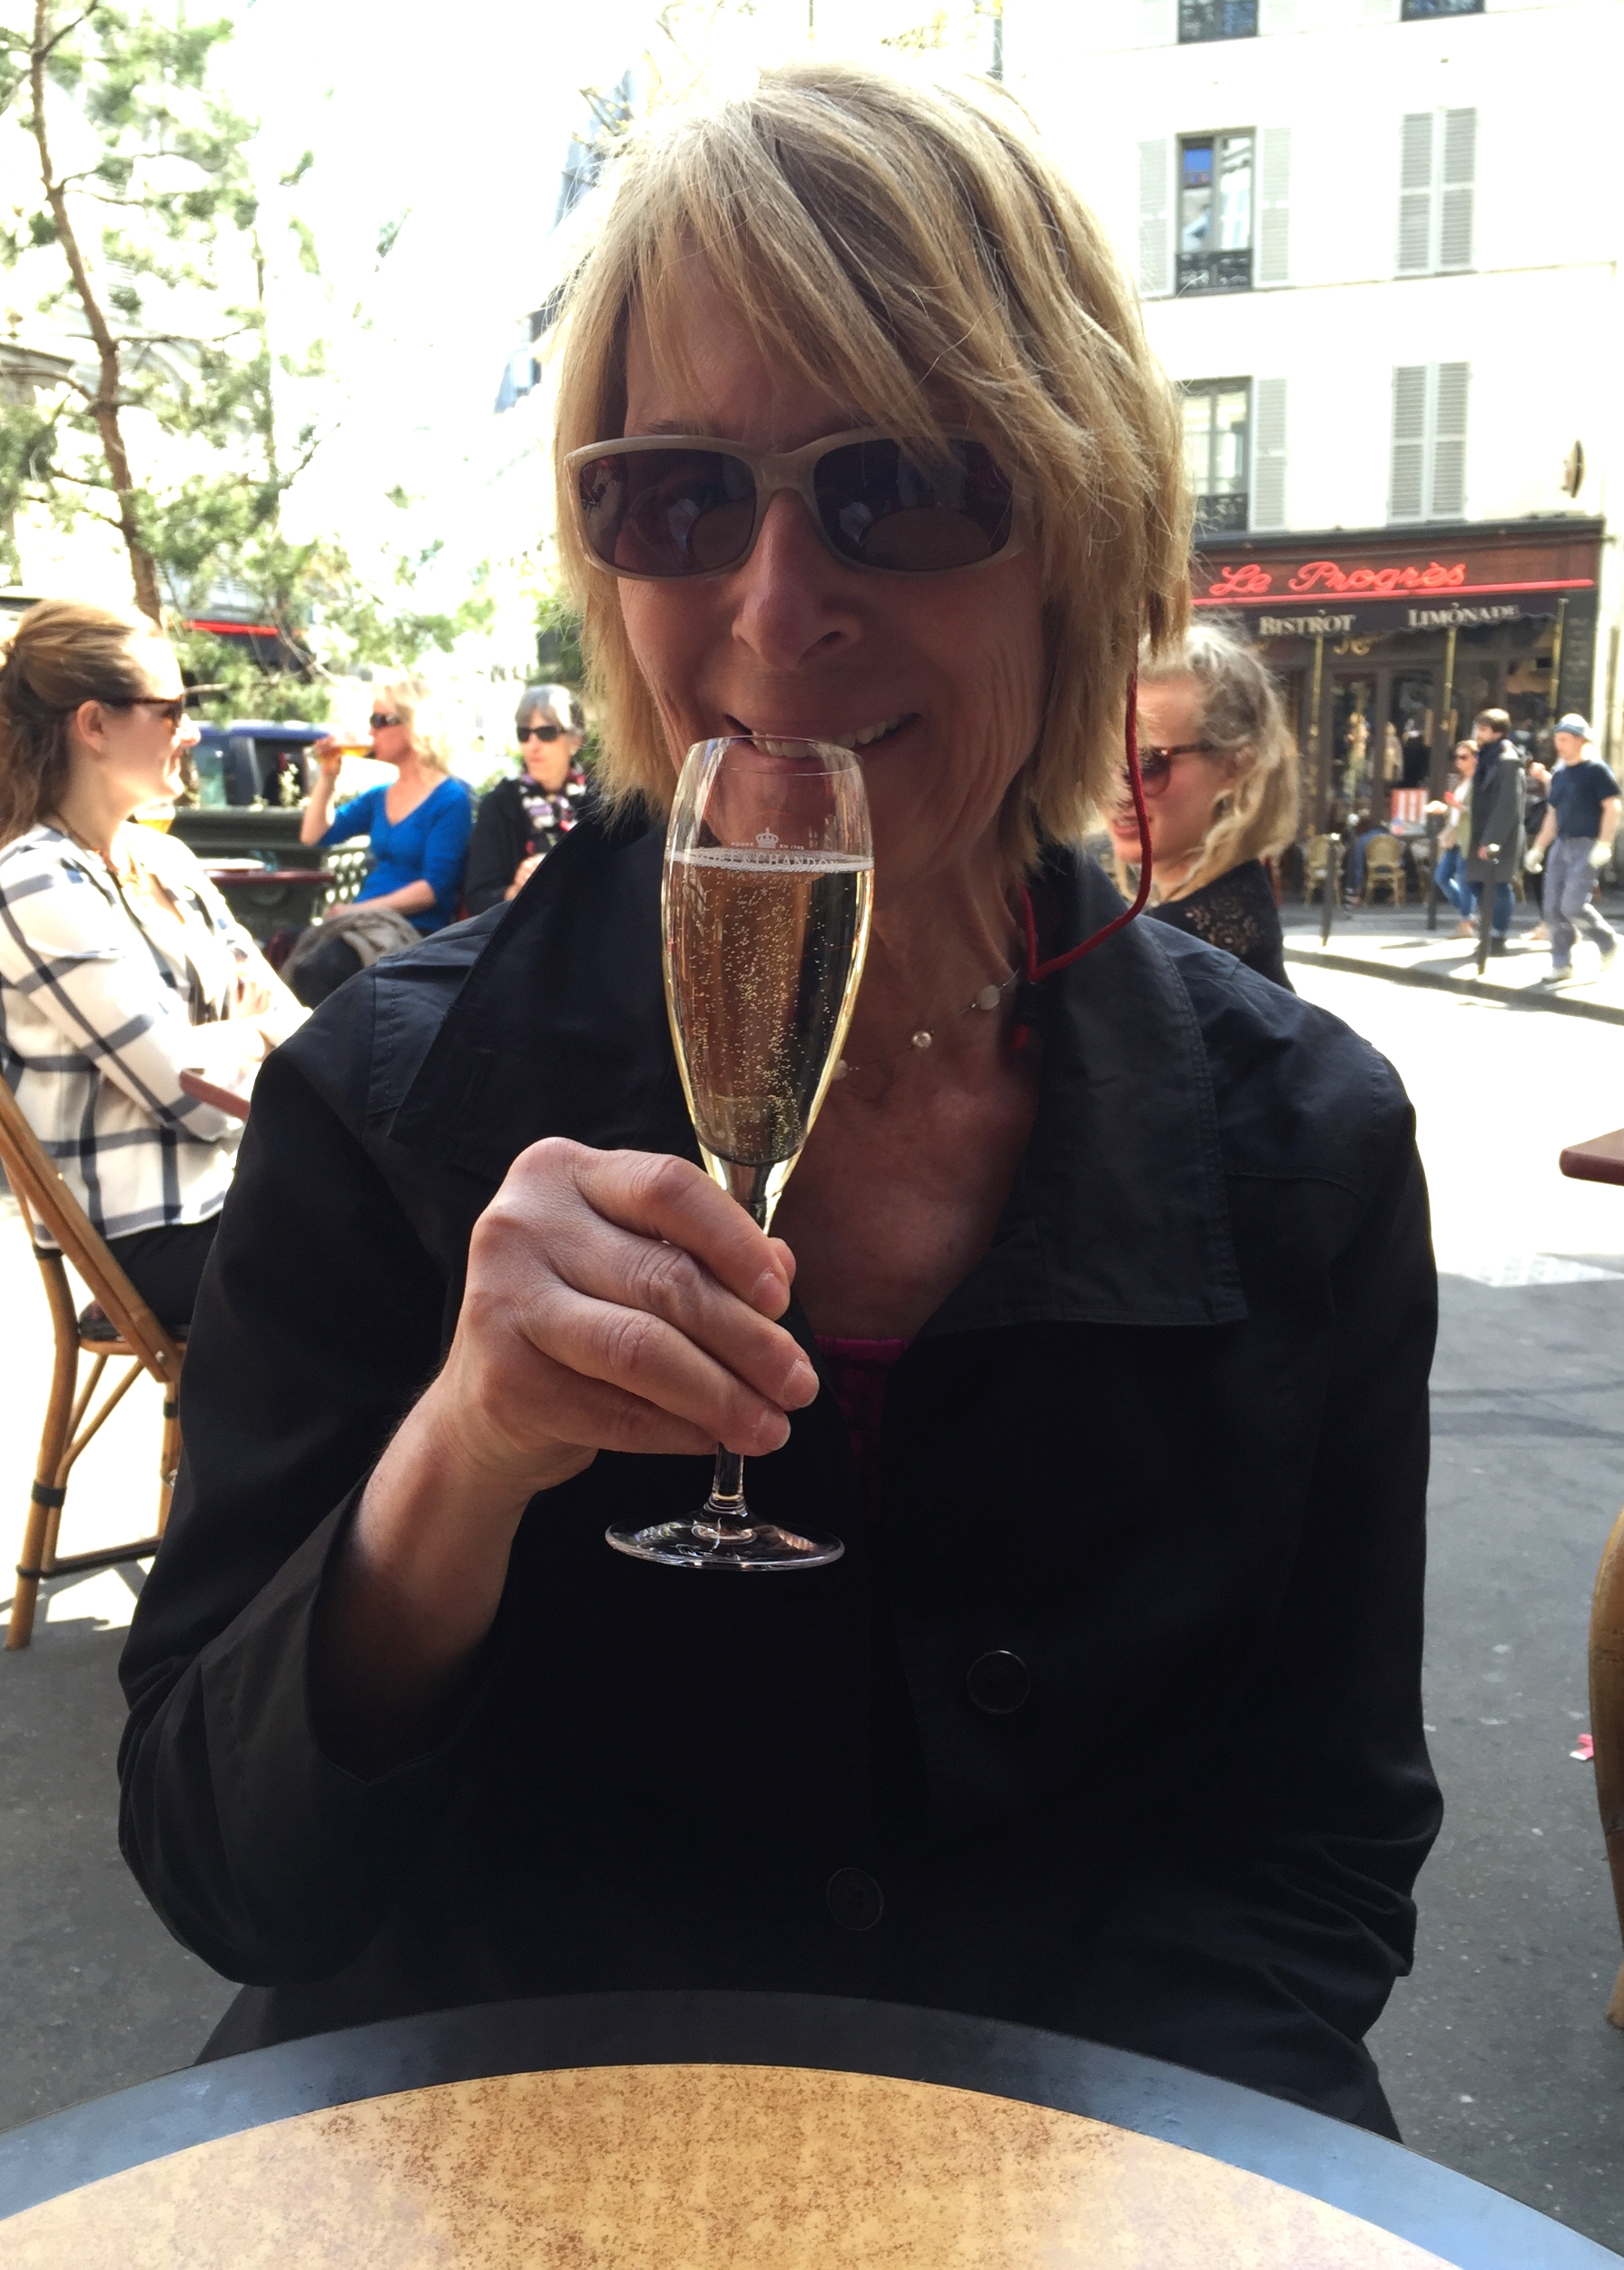 What's better than some champagne in Paris?